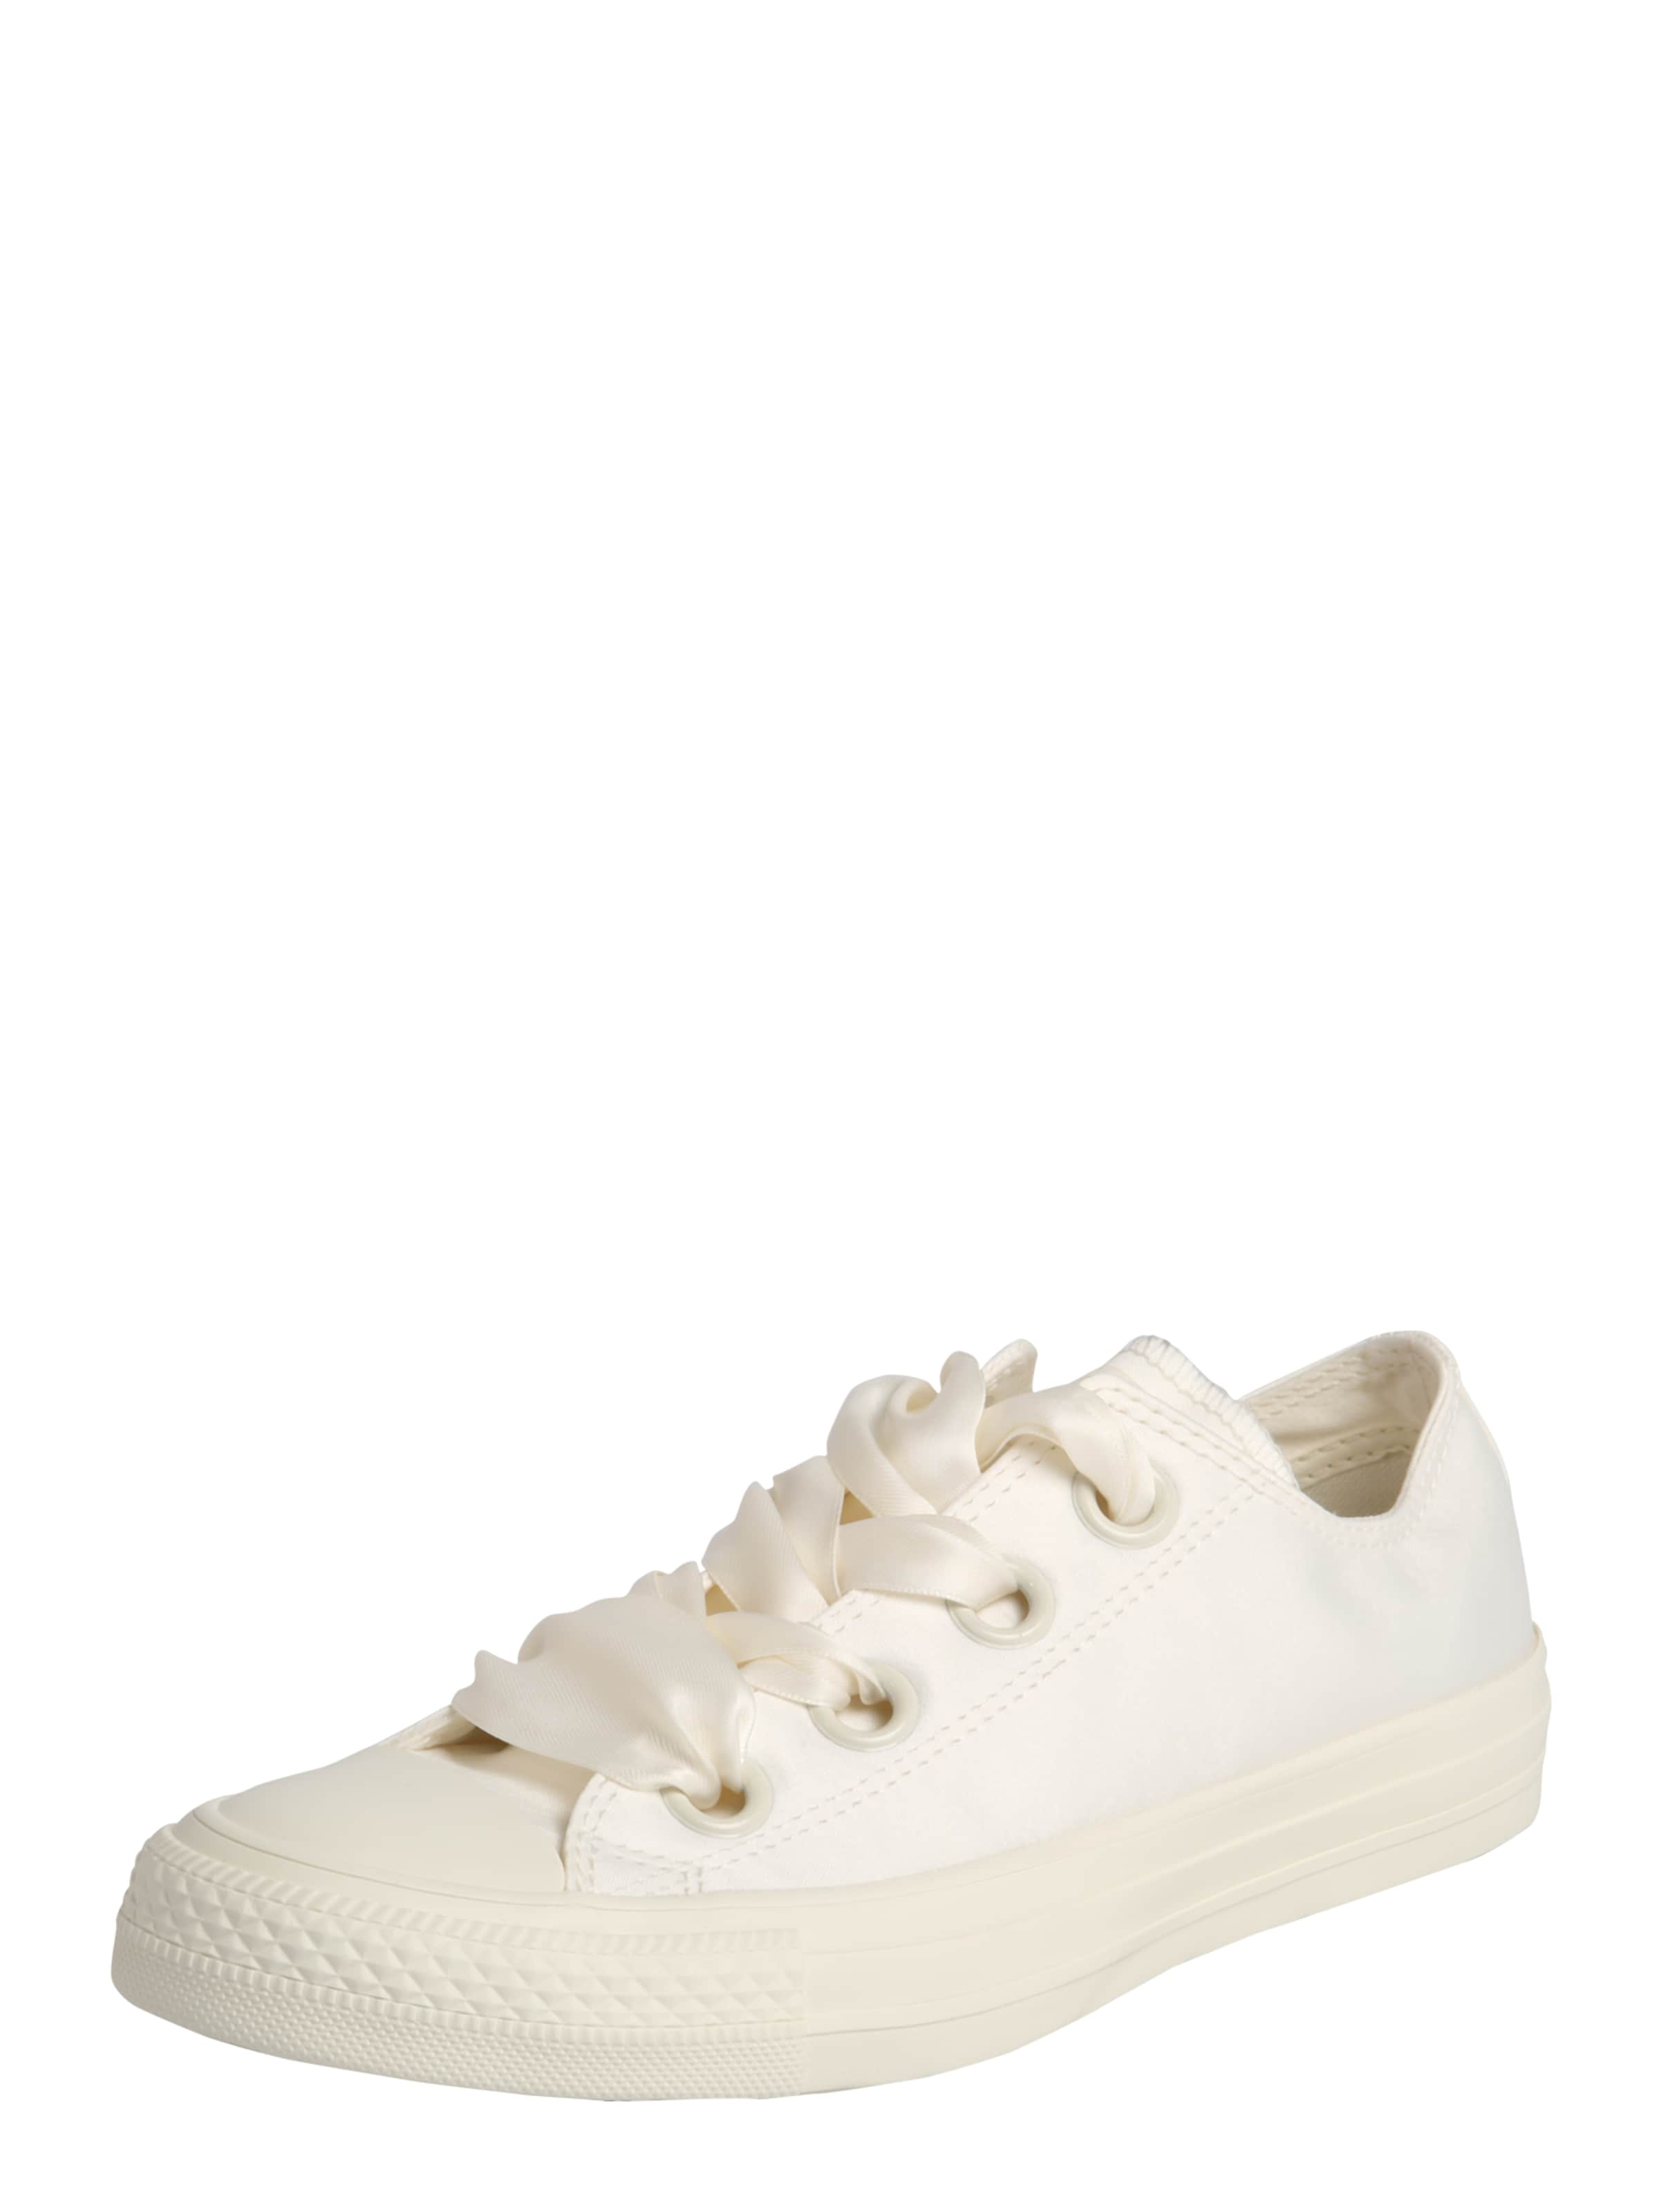 CONVERSE Sneaker  CHUCK TAYLOR ALL STAR BIG EYELETS OX